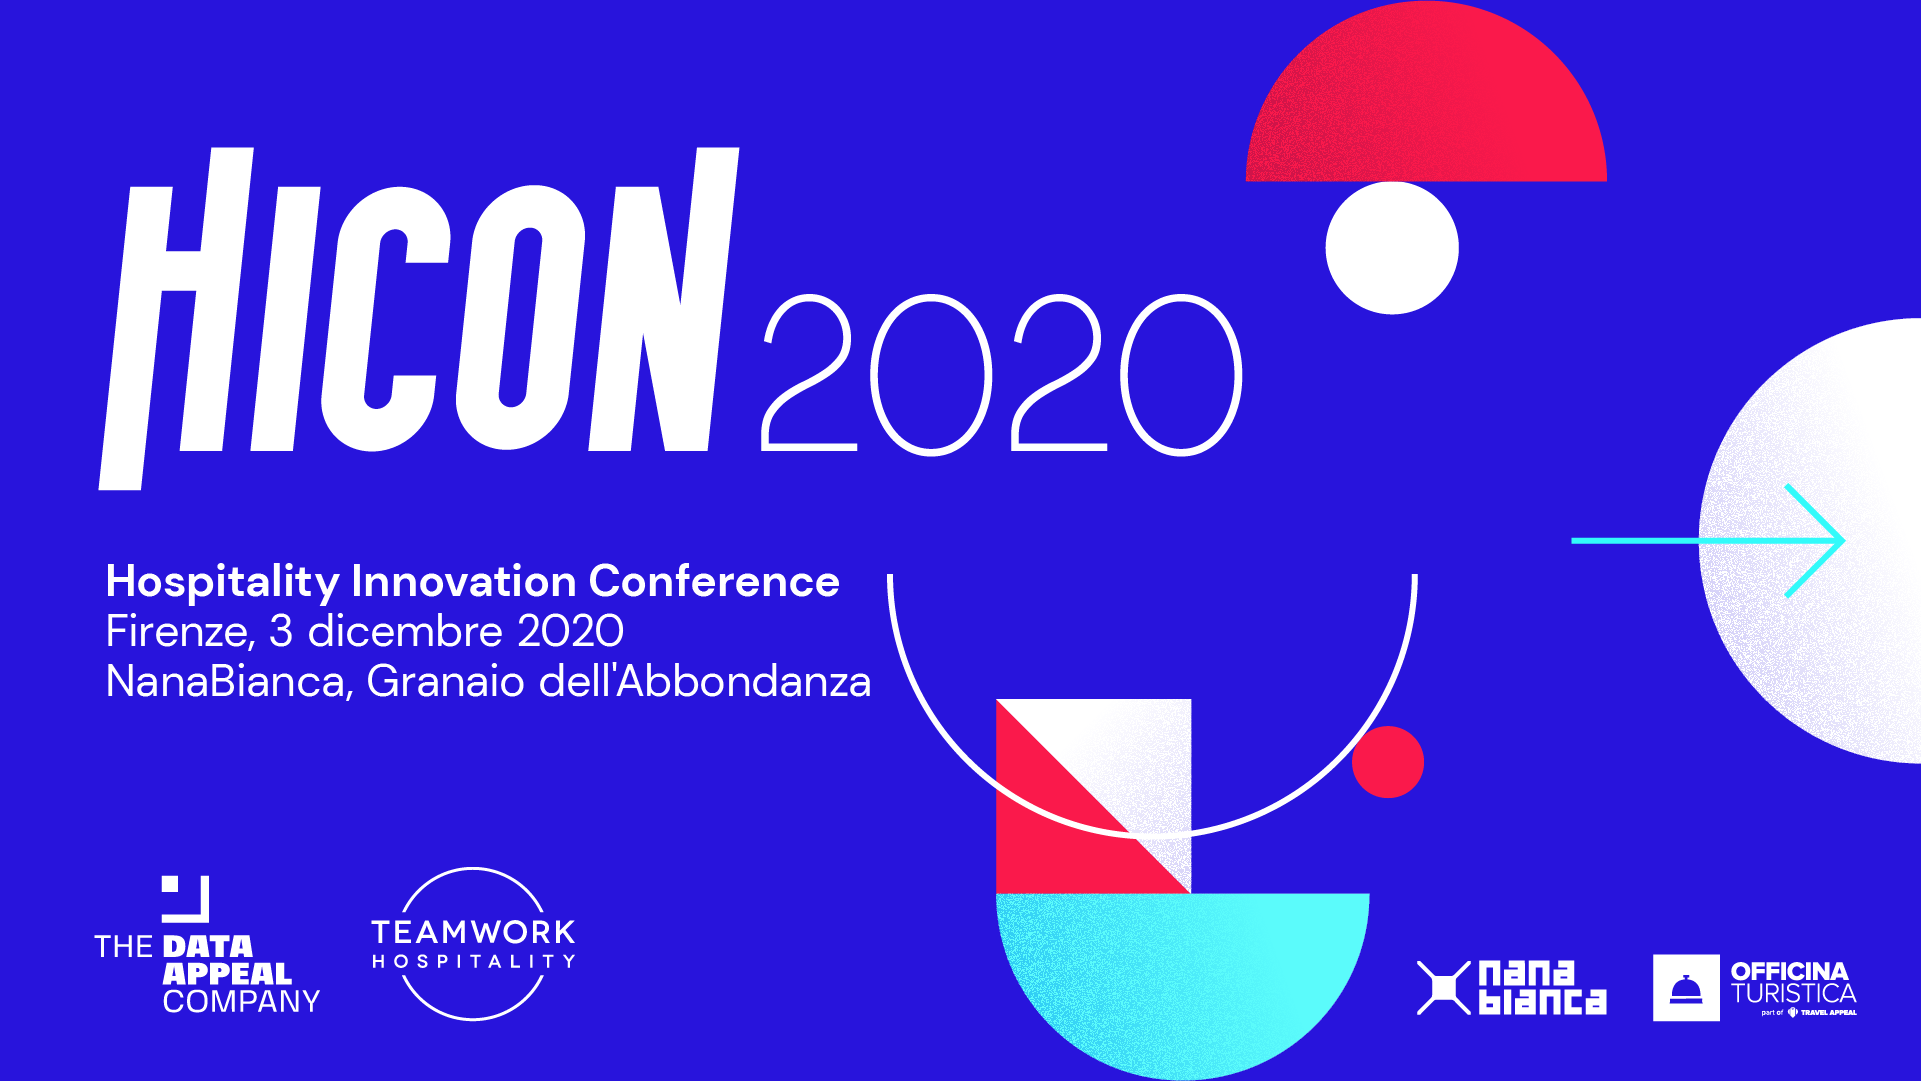 HICON2020 - Hospitality Innovation Conference